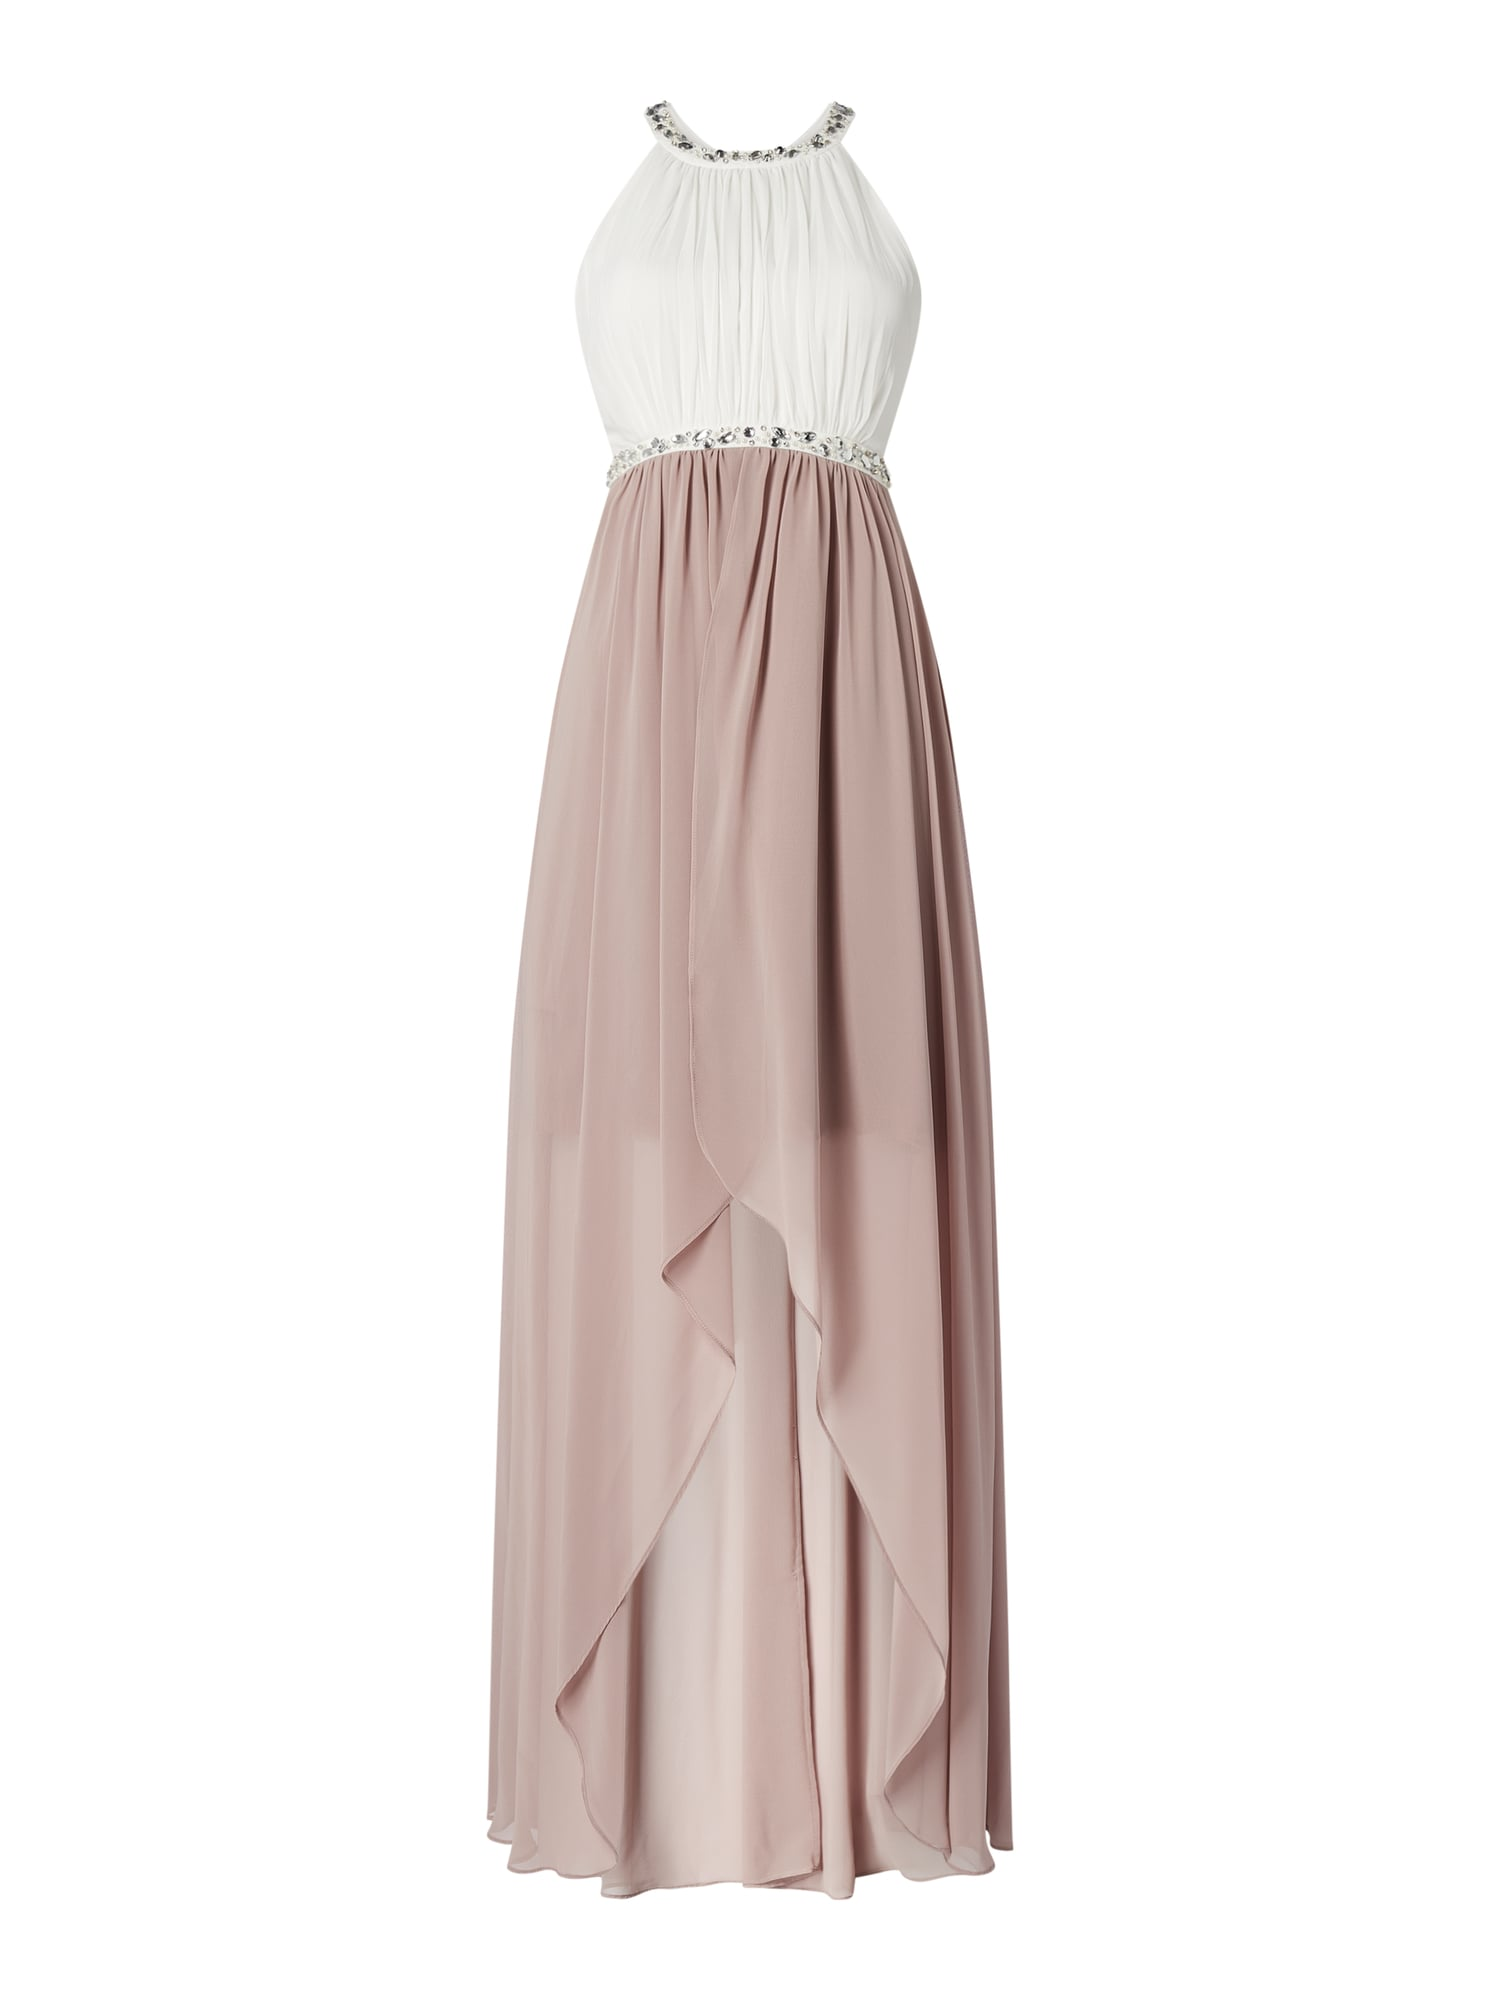 JAKE*S COCKTAIL Abendkleid aus Chiffon in Vokuhila-Passform in Lila online  kaufen (20) ▷ P&C Online Shop